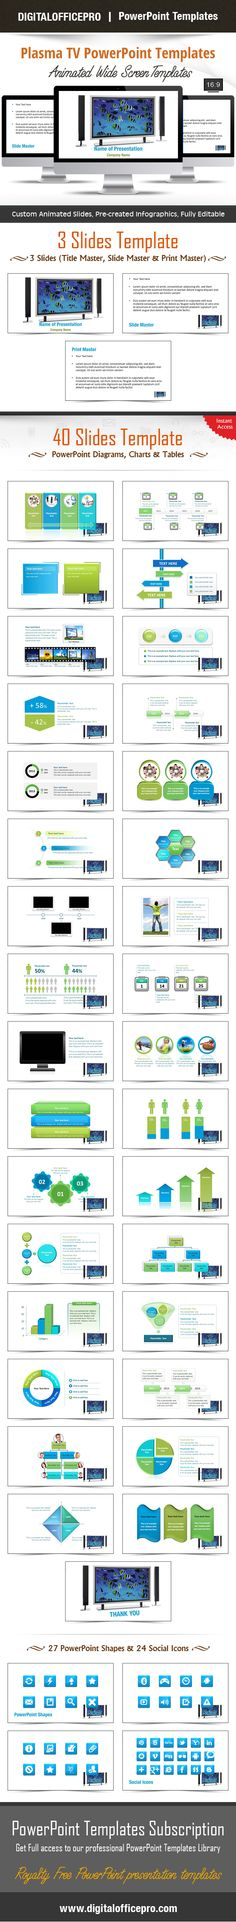 Commercial Storyboard Template Tv Powerpoint \u2013 mcari